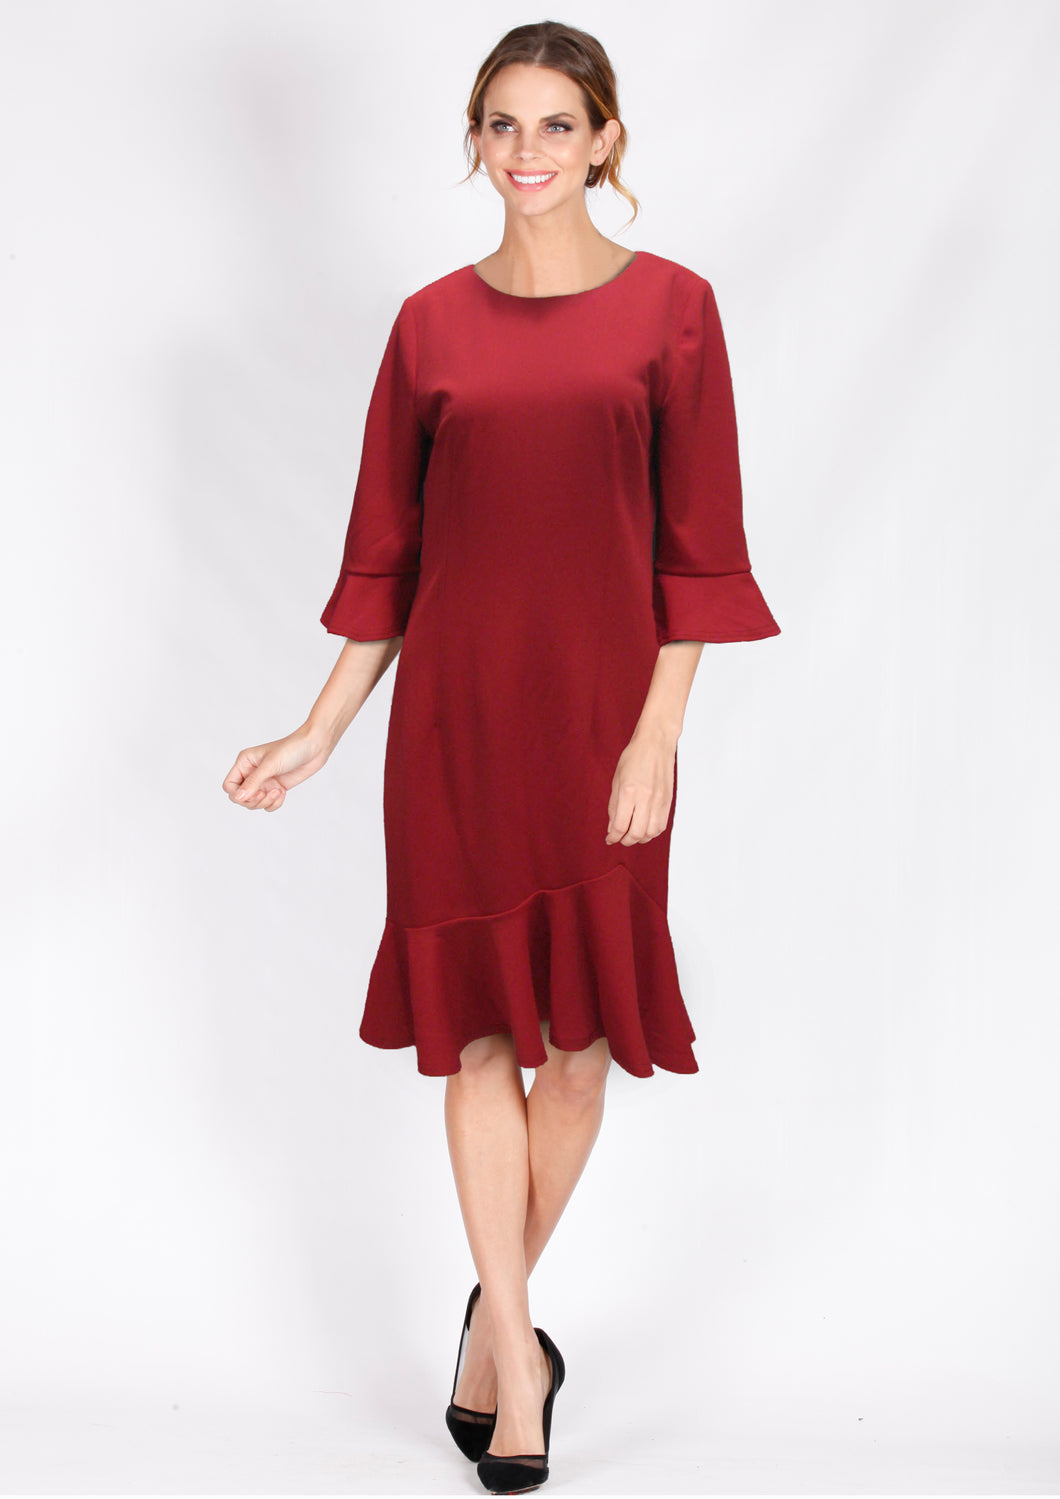 TG2534-1TB 3/4 Sleeve Fluted Hem Dress (Pack) New Arrival